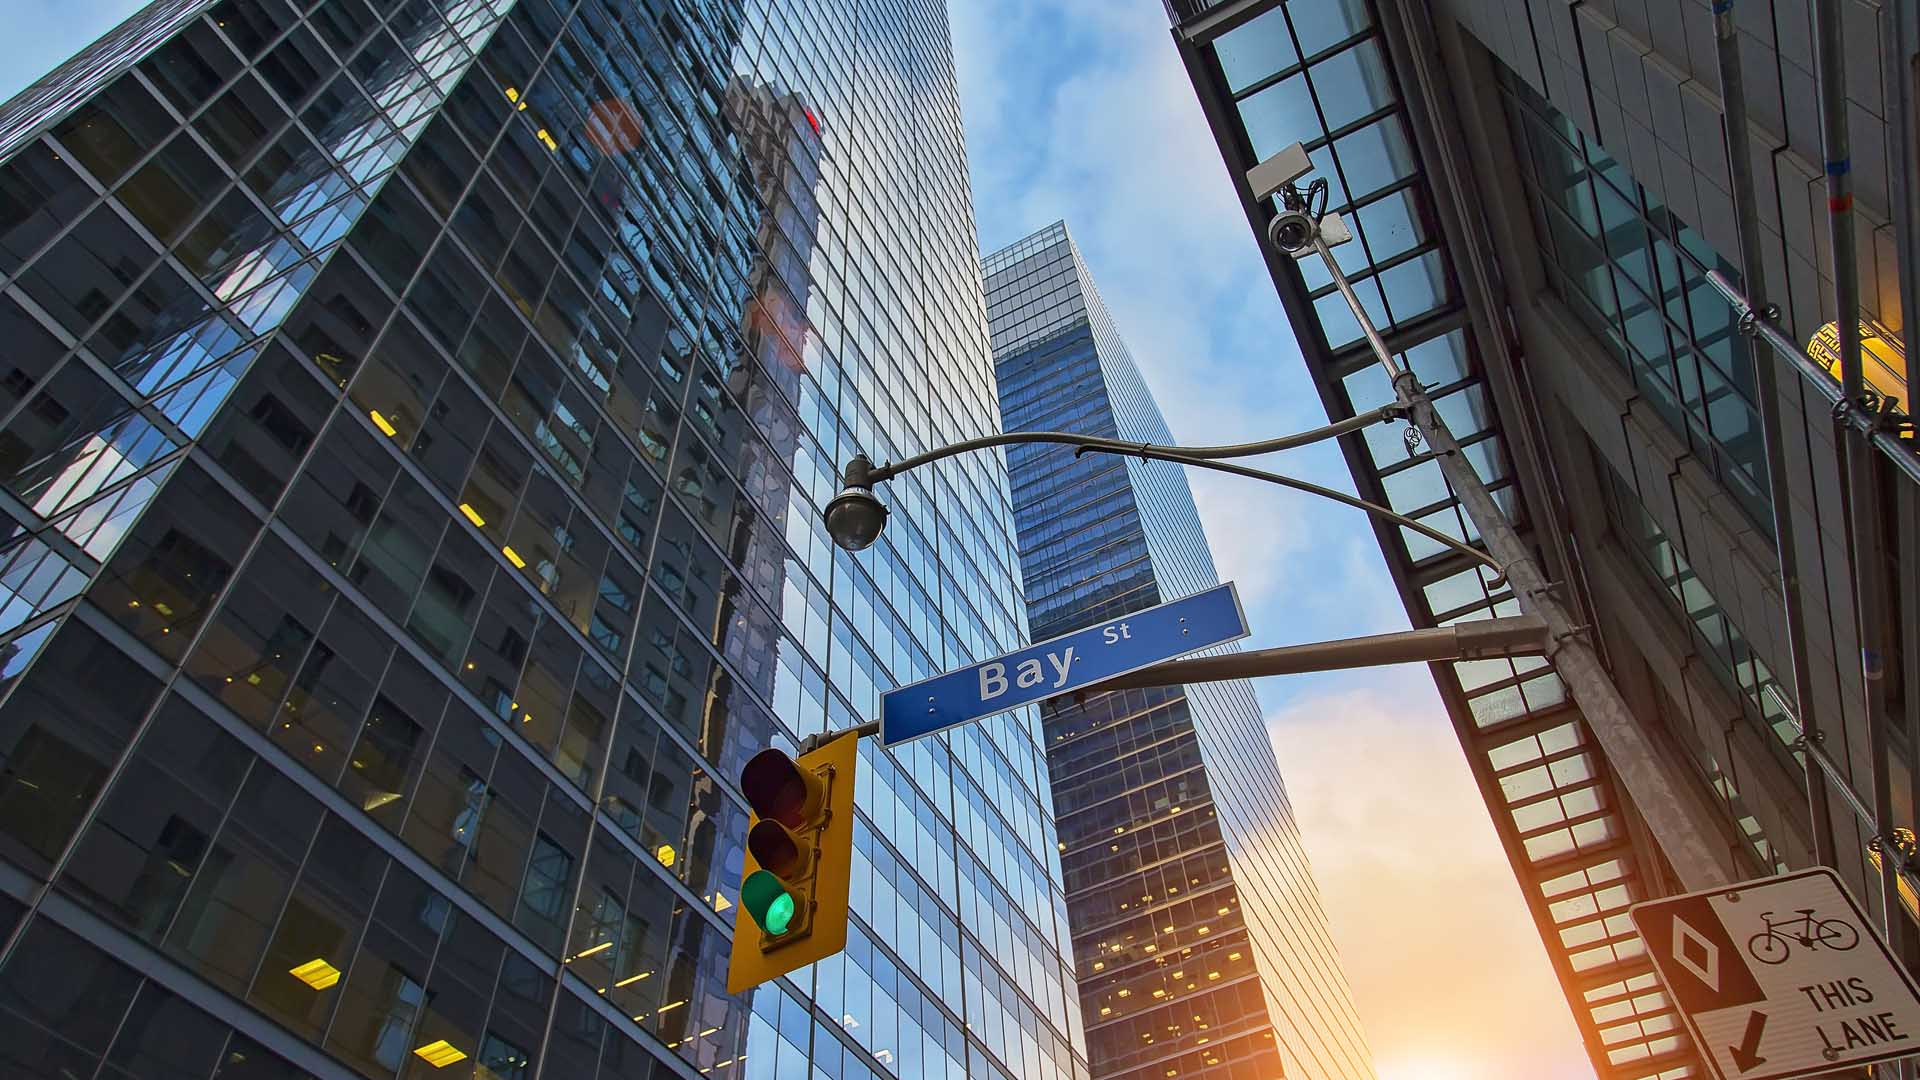 CISdesk-8-reasons-why-you-should-invest-or-open-your-business-in-Canada